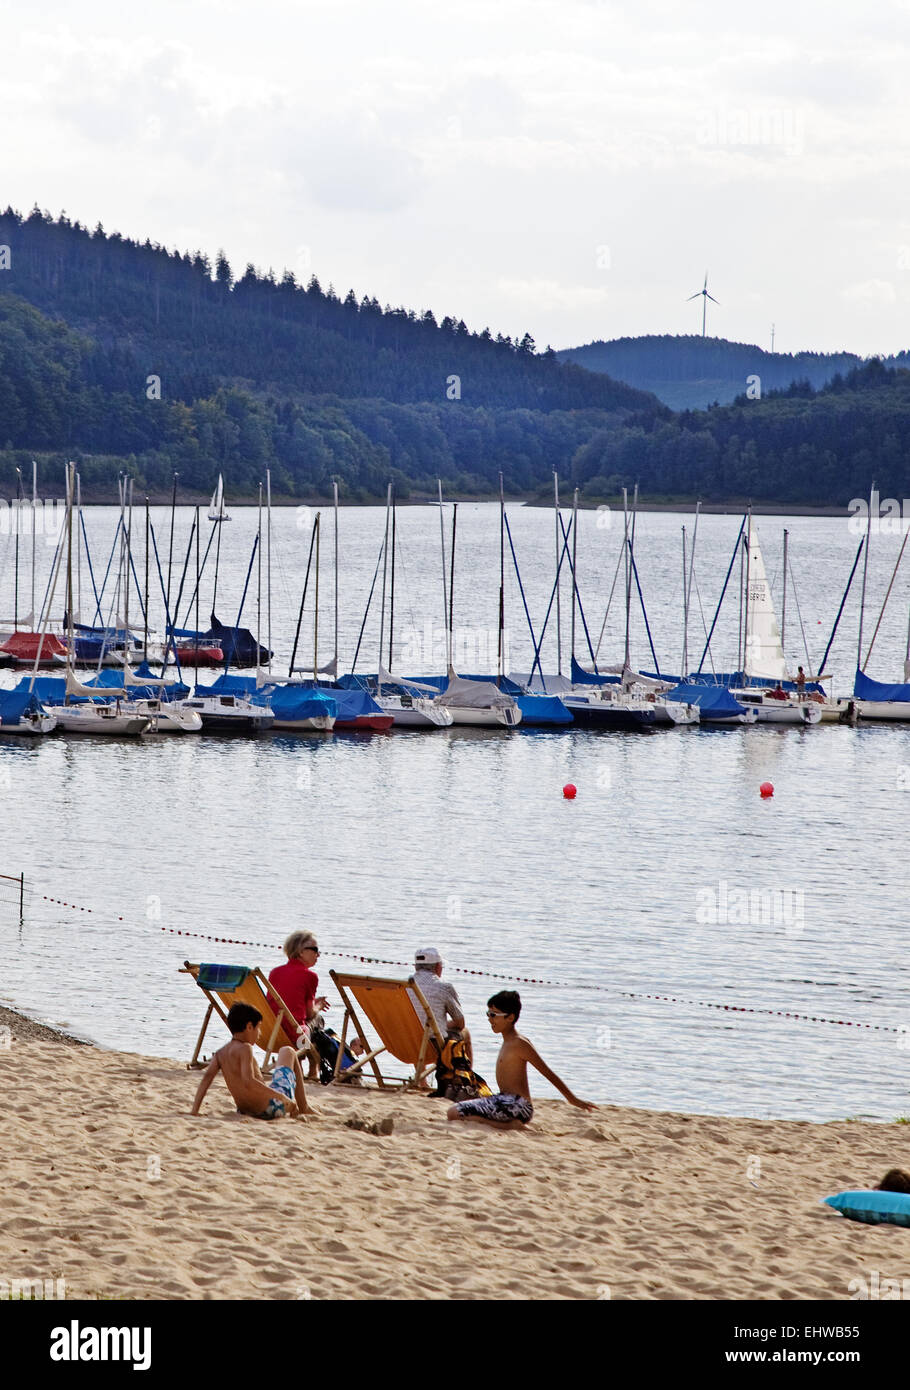 The Waldburger bay at Bigge in Attendorn. - Stock Image